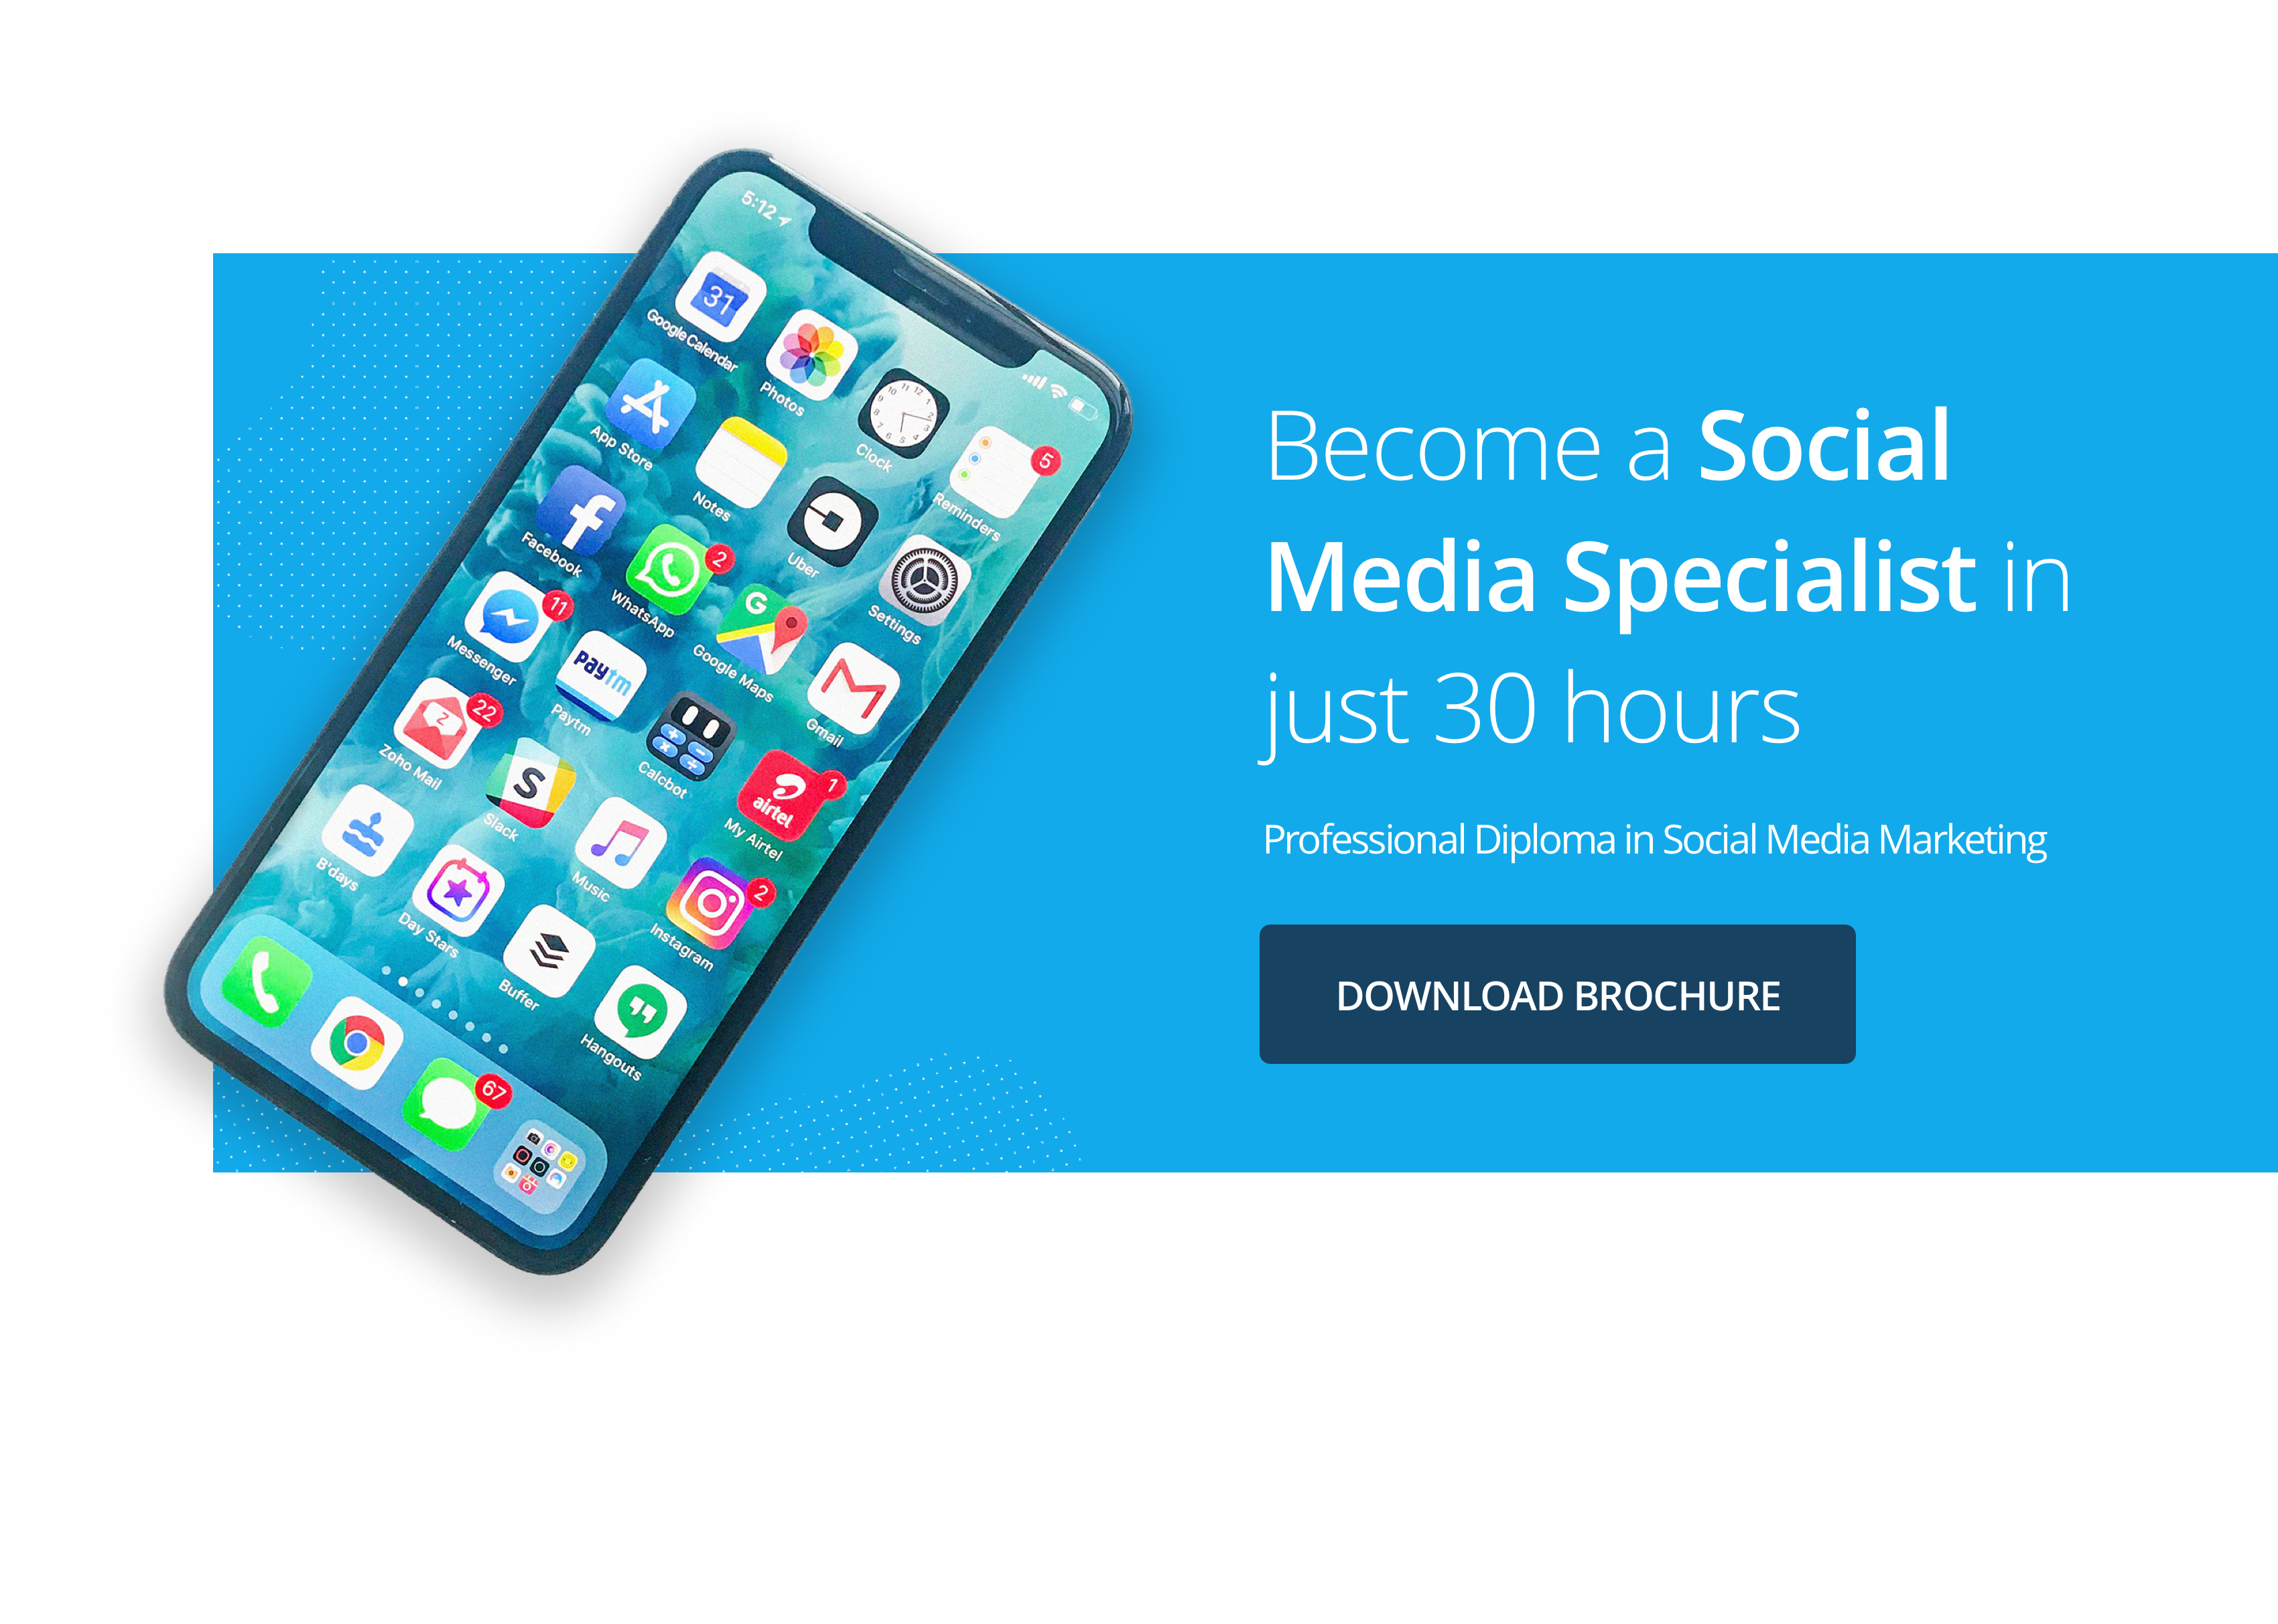 Become a Social Media Specialist in just 30 hours